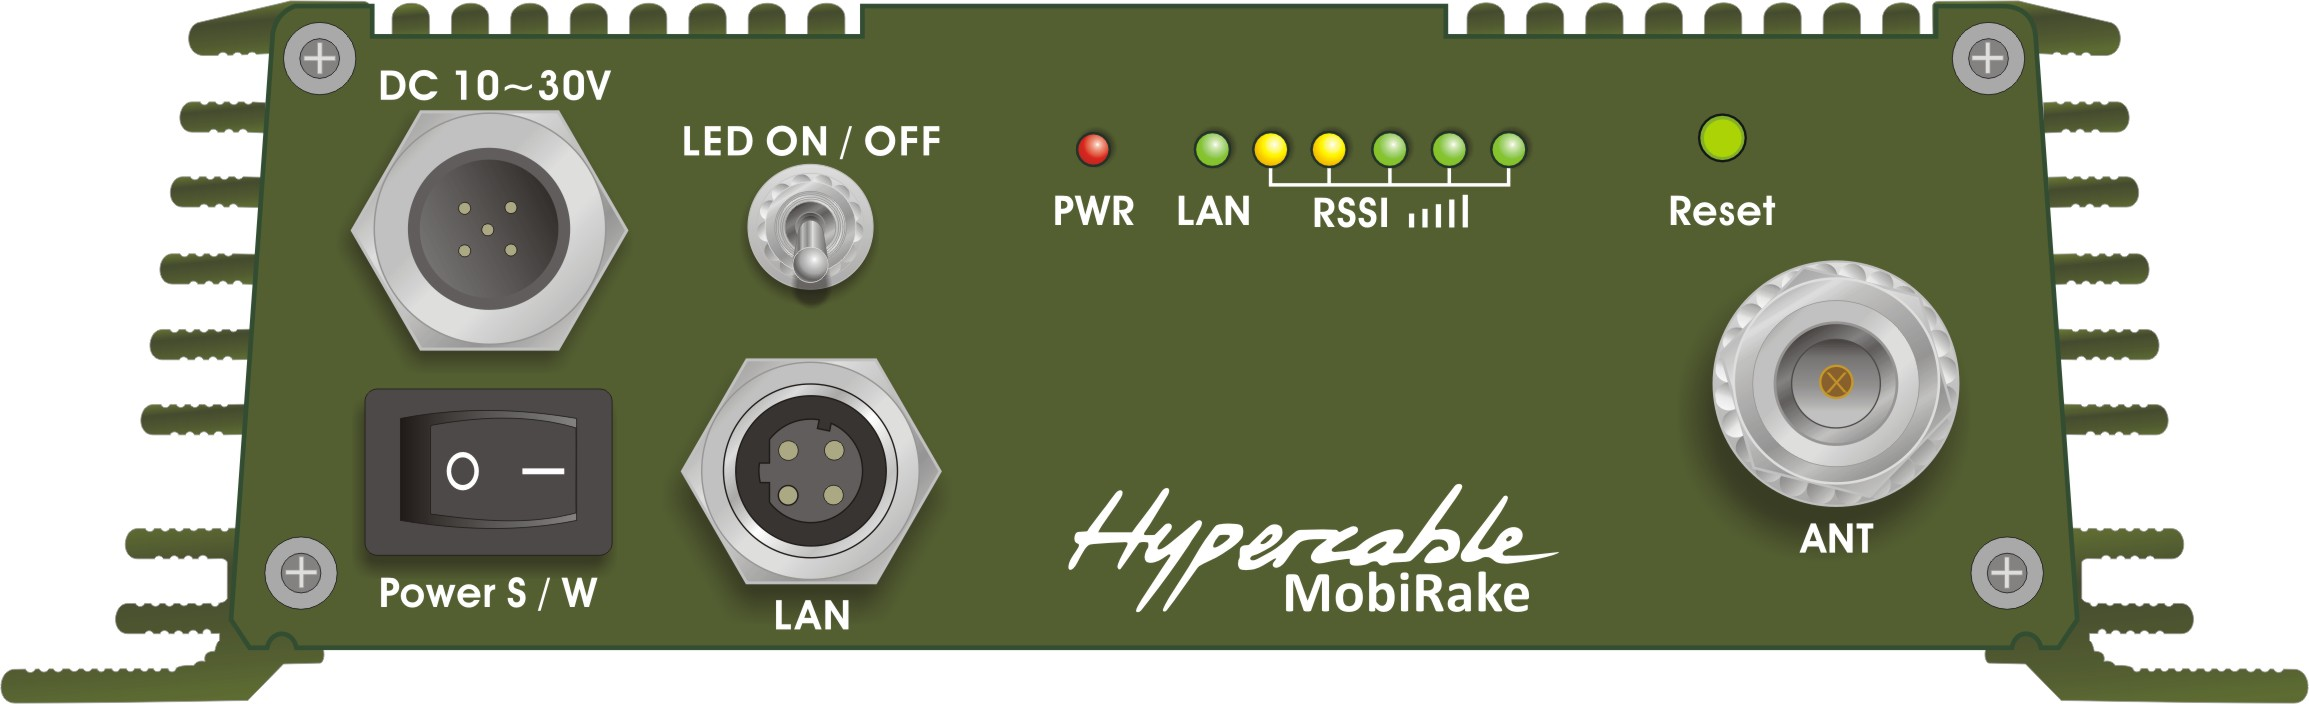 Mobirake_super_wifi_mobile